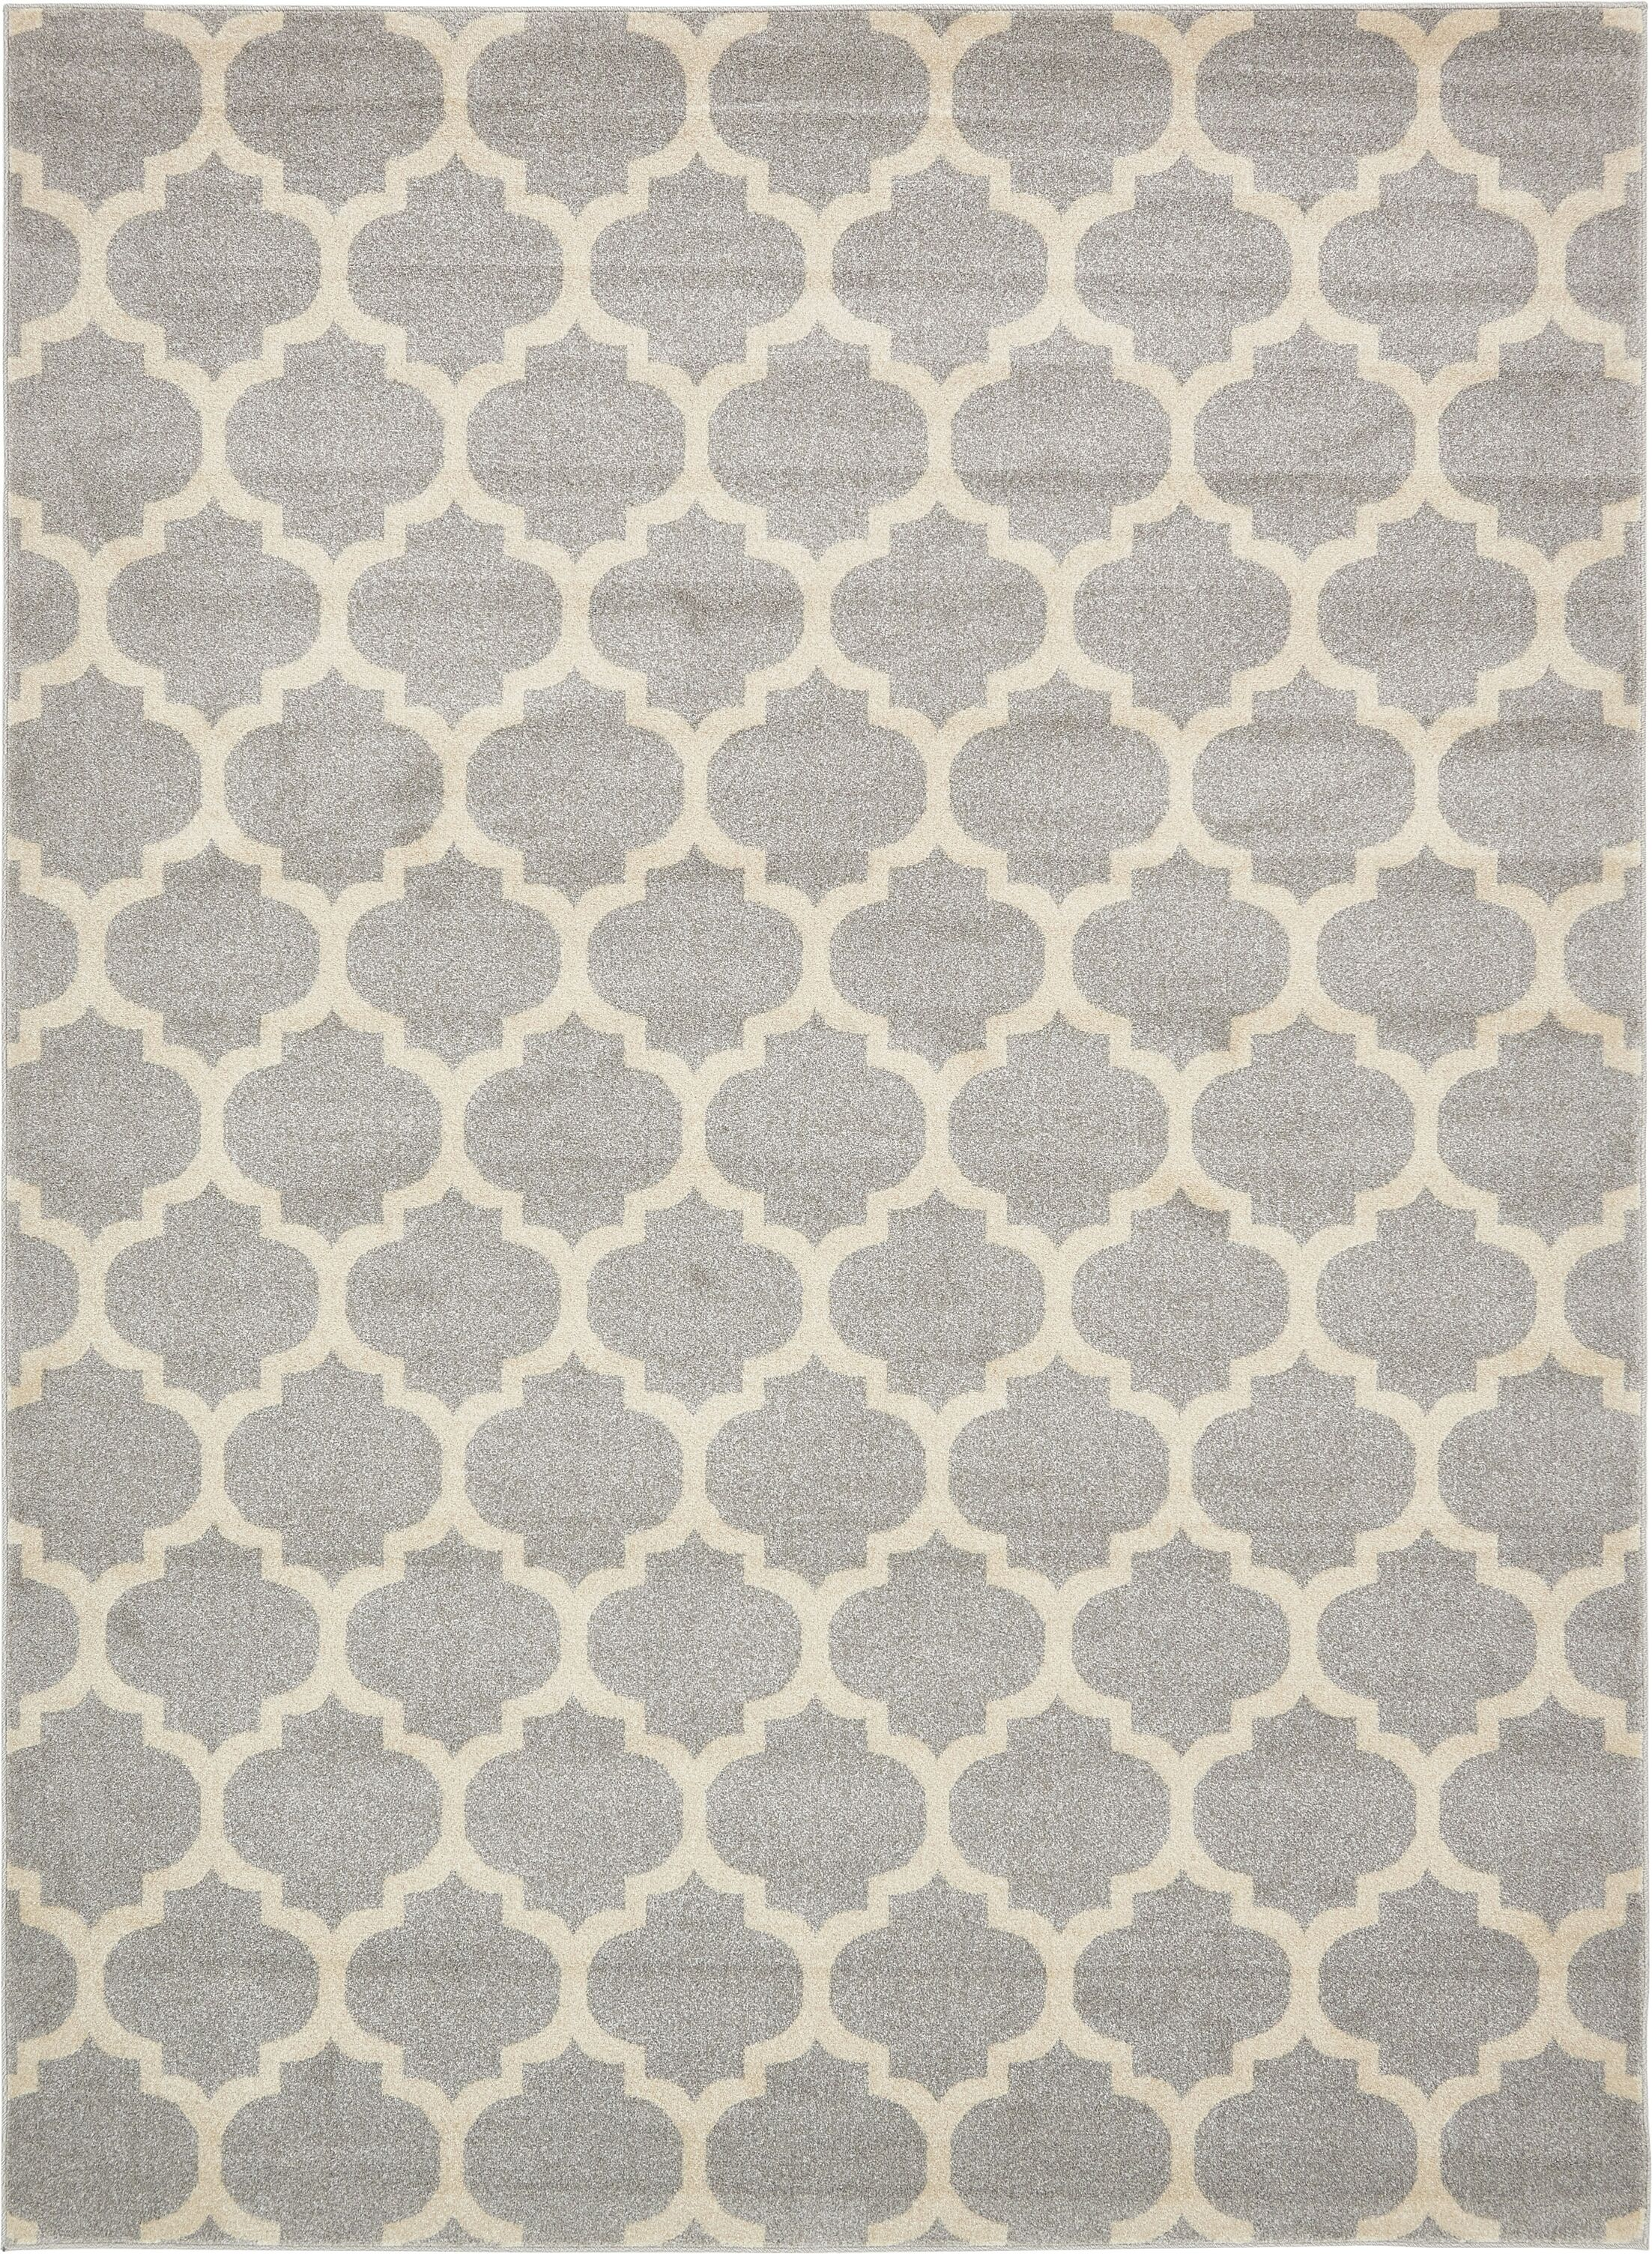 Moore Gray Area Rug Rug Size: Rectangle 8' x 11'